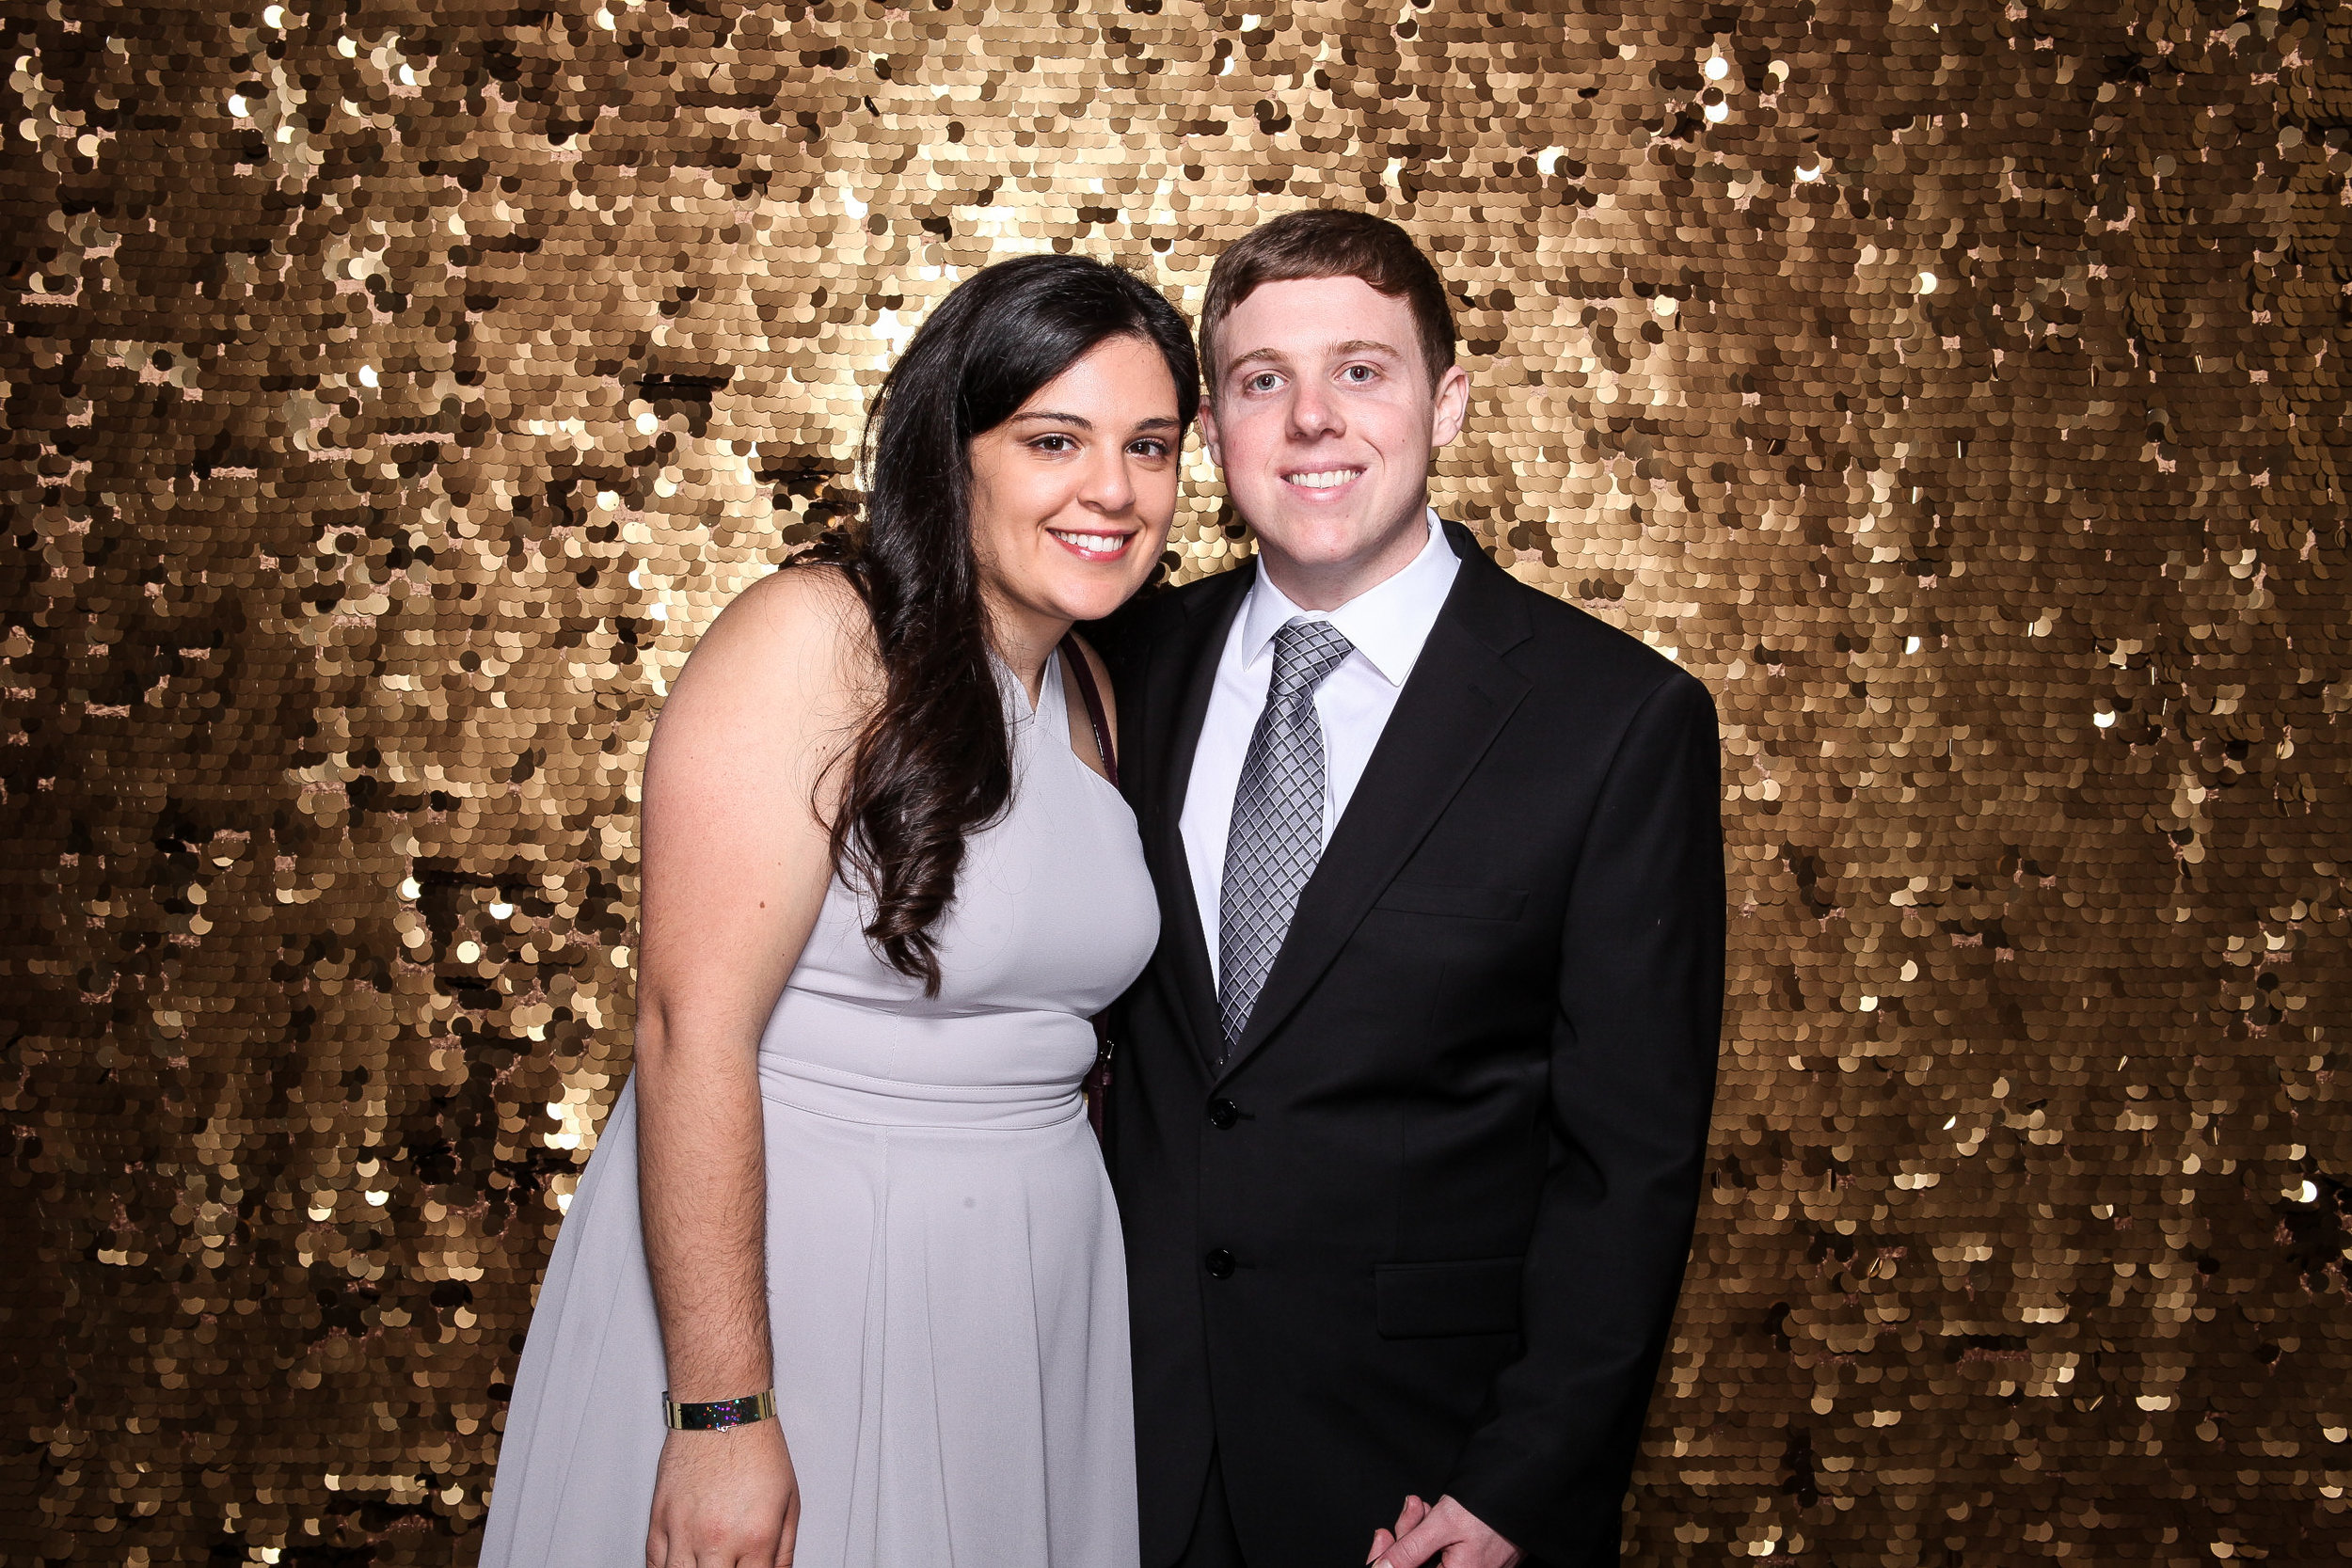 20190503_Adelphi_Senior_Formal-115.jpg